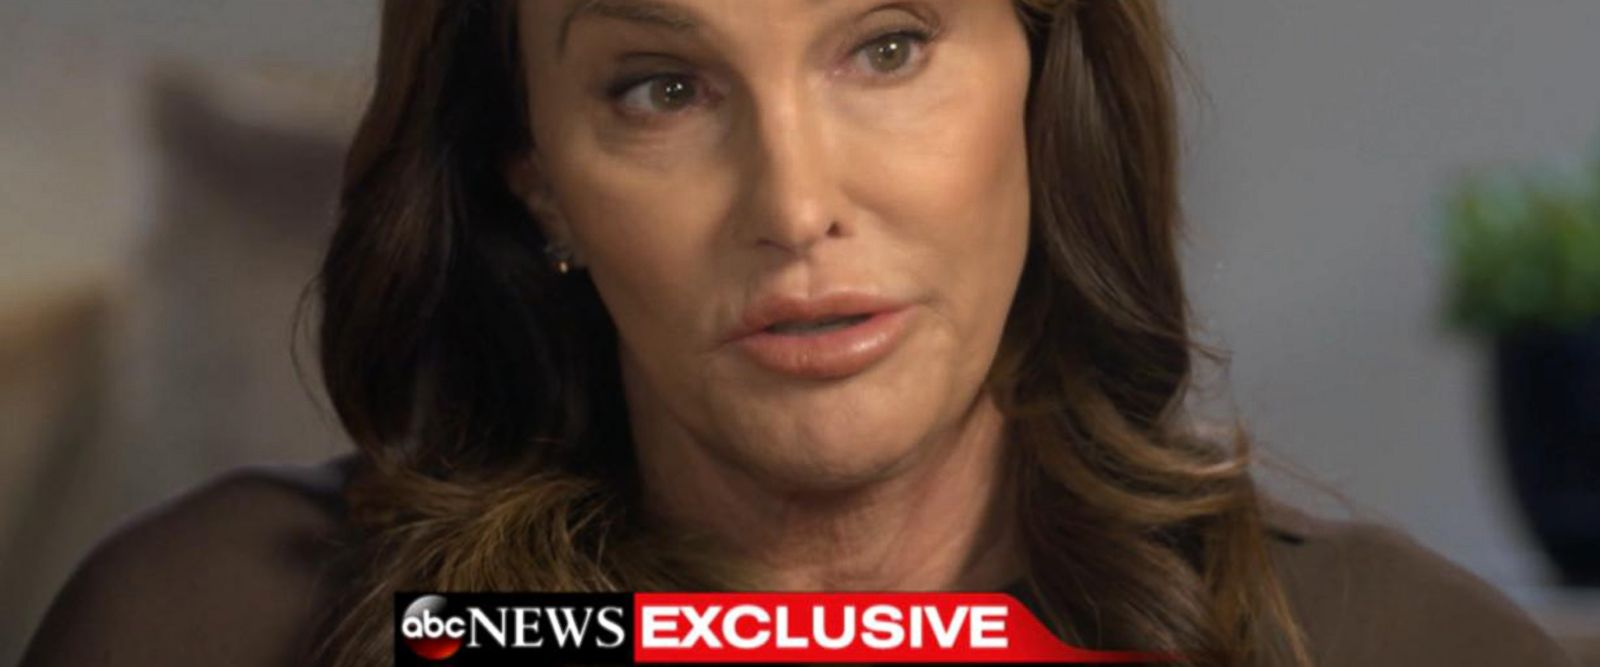 VIDEO: Caitlyn Jenner on what her life is like today